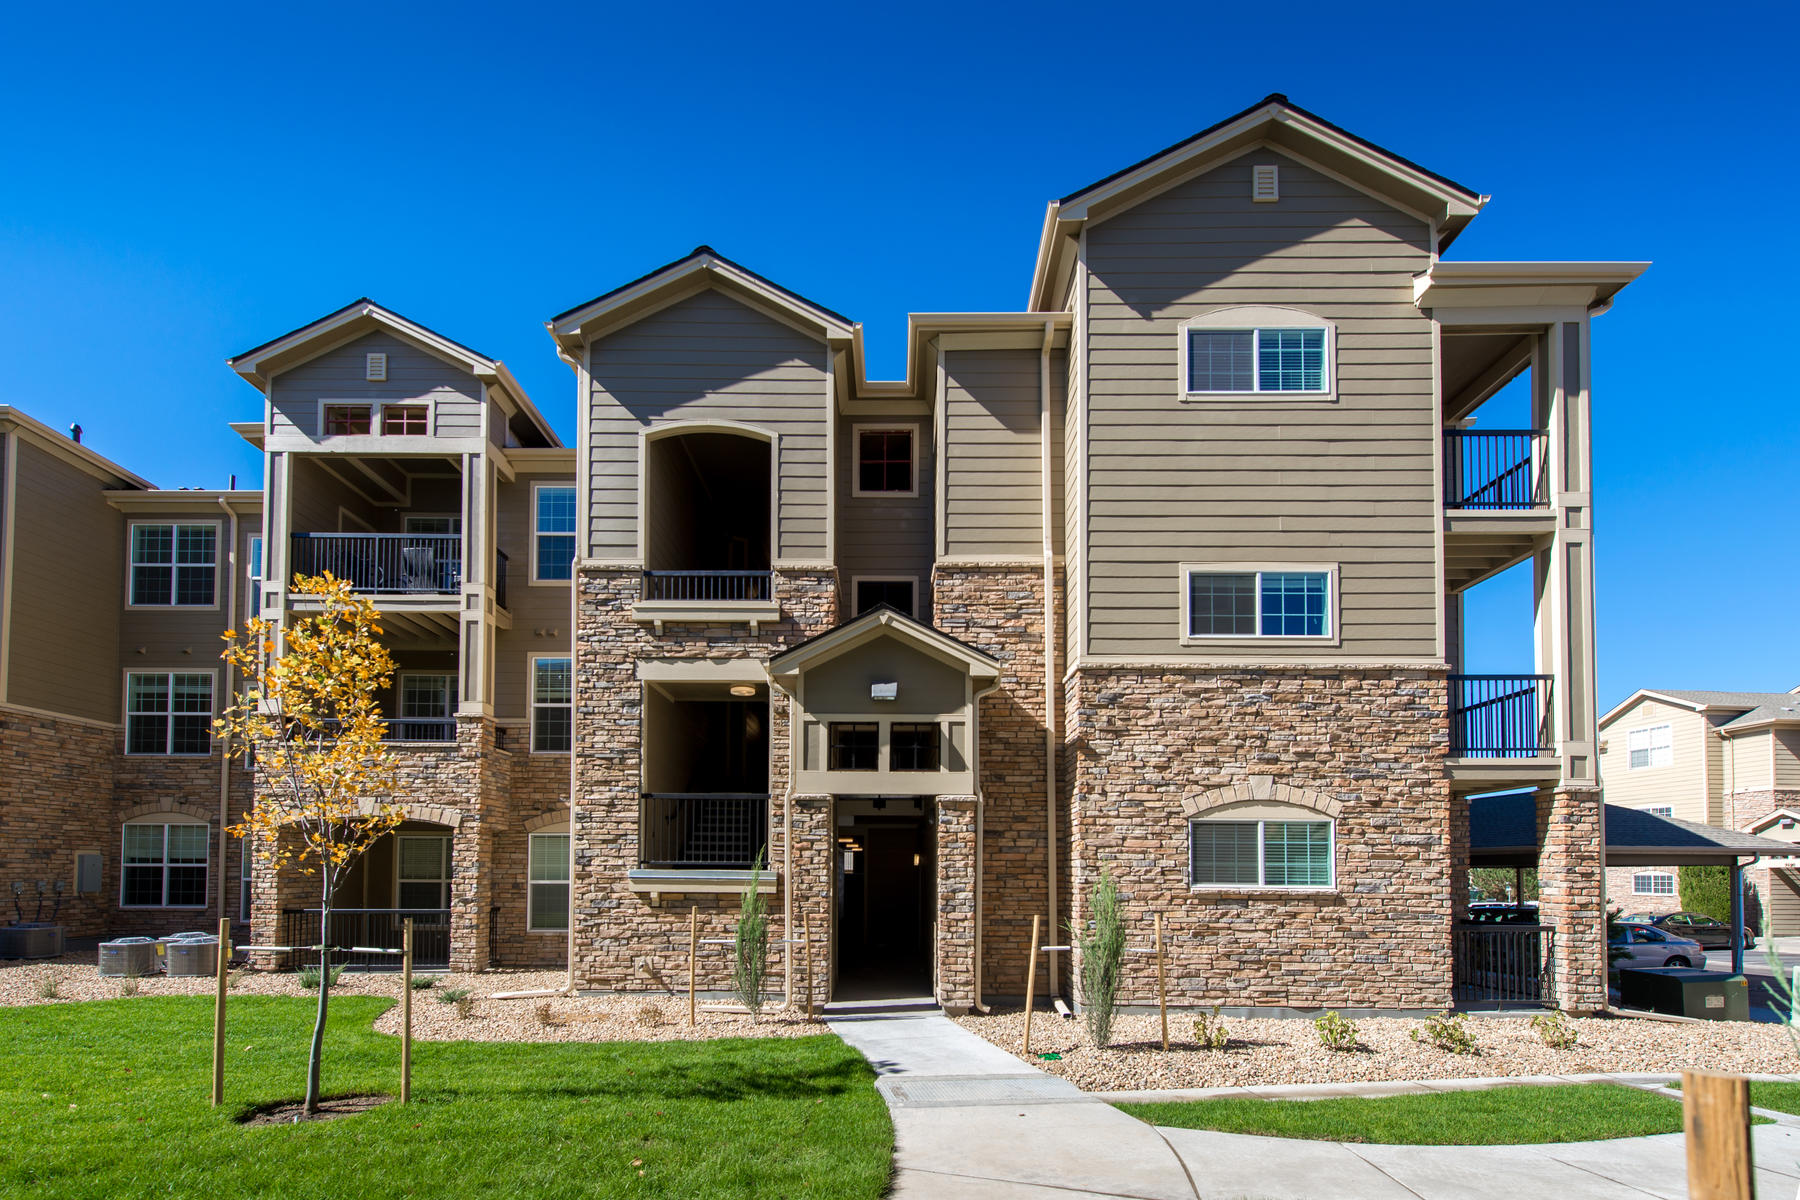 Single Family Home for Active at Come celebrate the opening of our next building. 17353 Wilde Ln #305 B, Bldg 6 Parker, Colorado 80134 United States